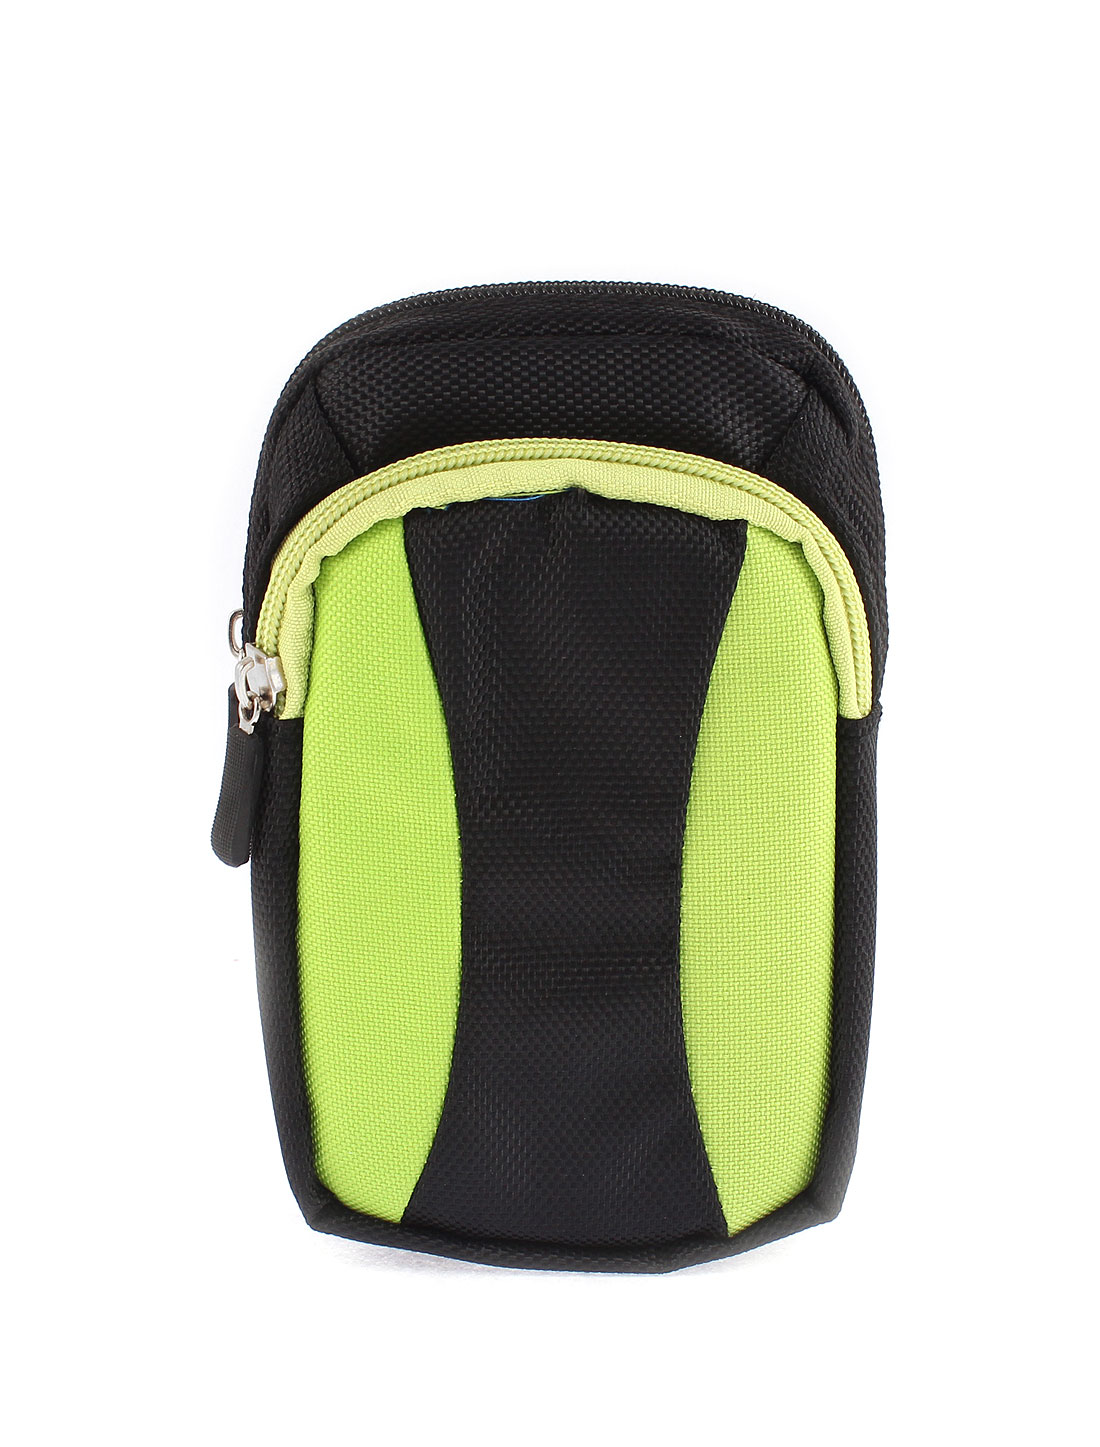 Unisex Zipper Closure Coin Phone Holder Waist Belt Pack Bag Wallet Green